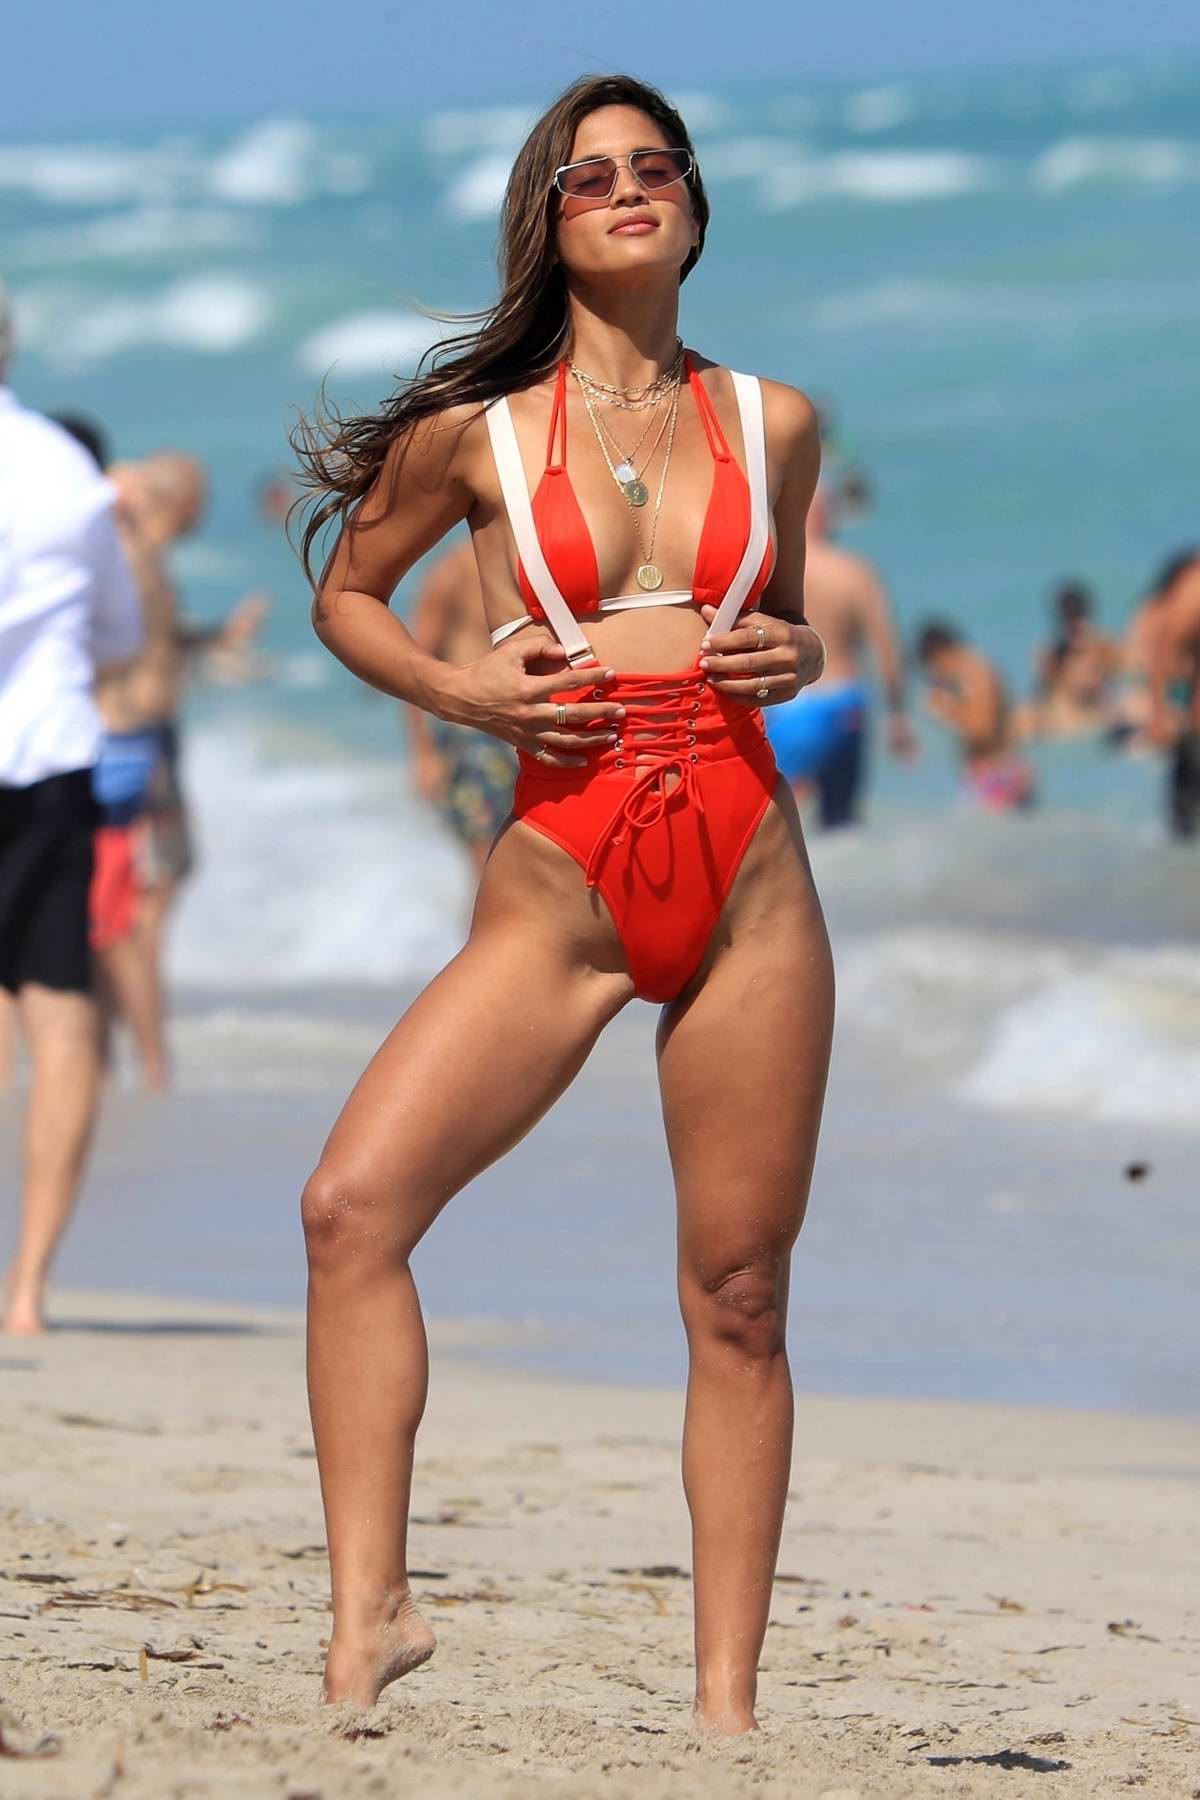 Rocky Barnes hits the beach in a red bikini for an impromptu photoshoot in Miami